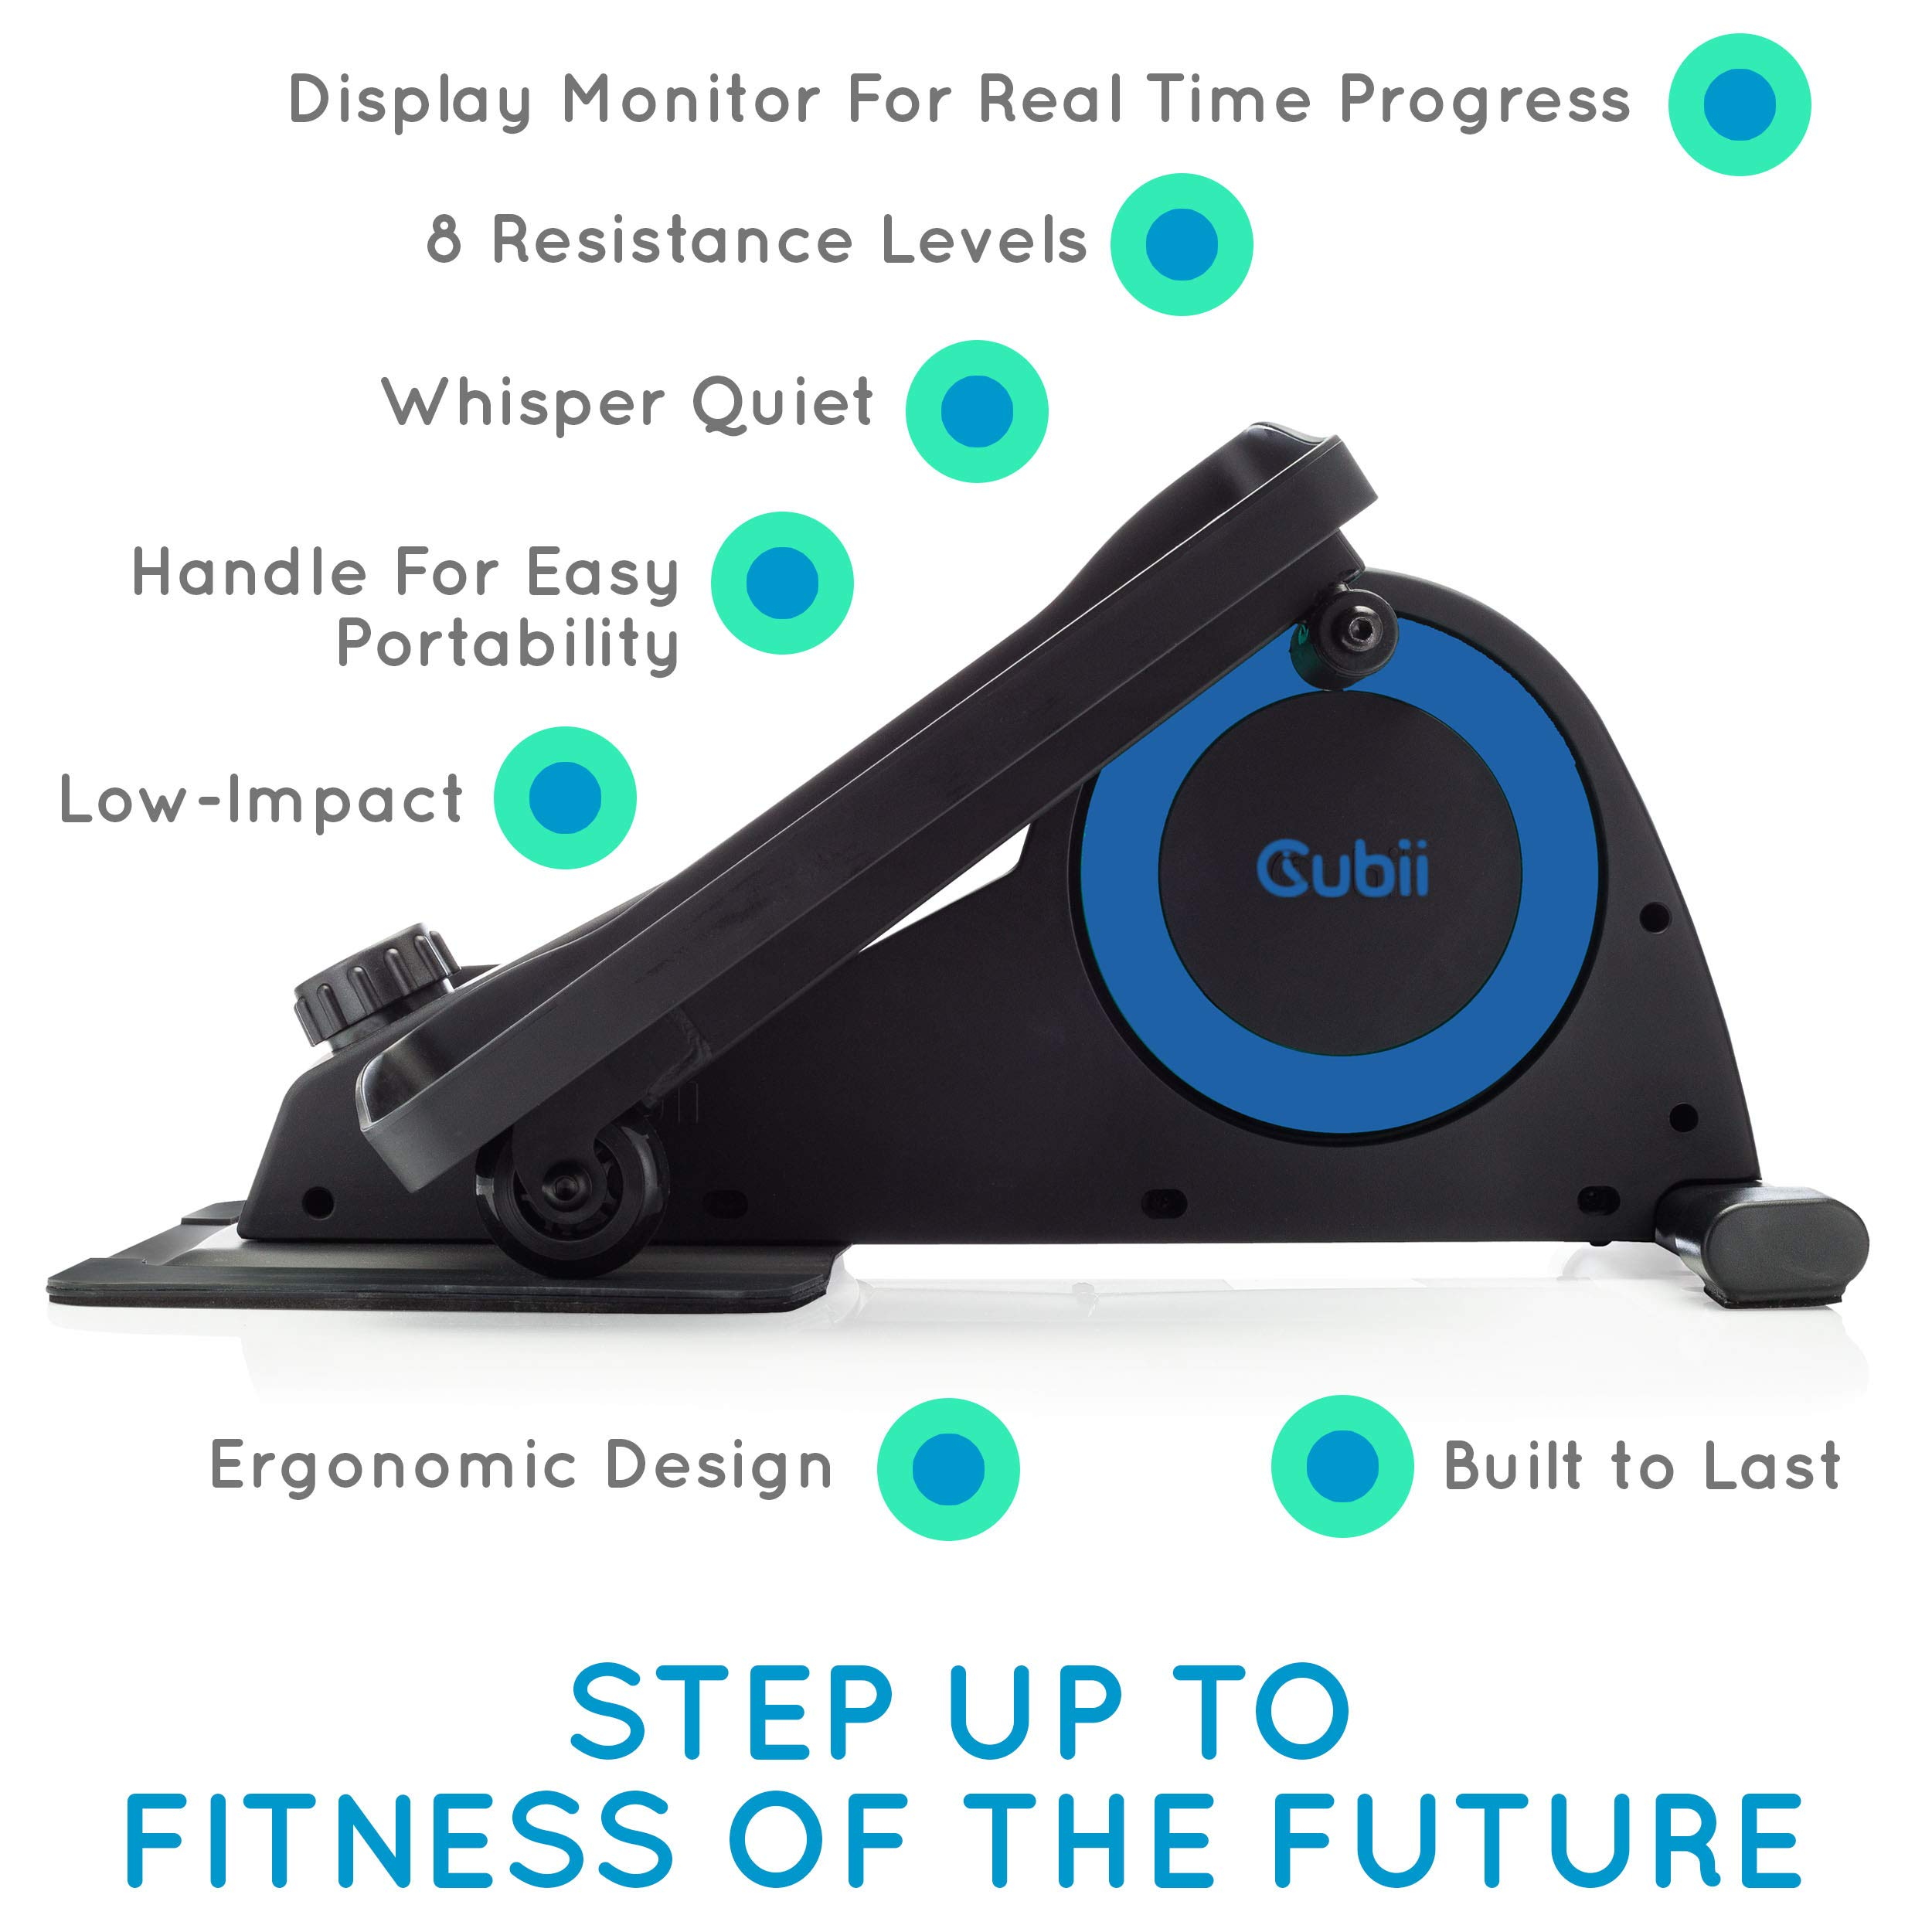 Cubii Jr: Desk Elliptical with Built in Display Monitor, Easy Assembly, Quiet & Compact, Adjustable Resistance (Royal Blue) by Cubii (Image #3)